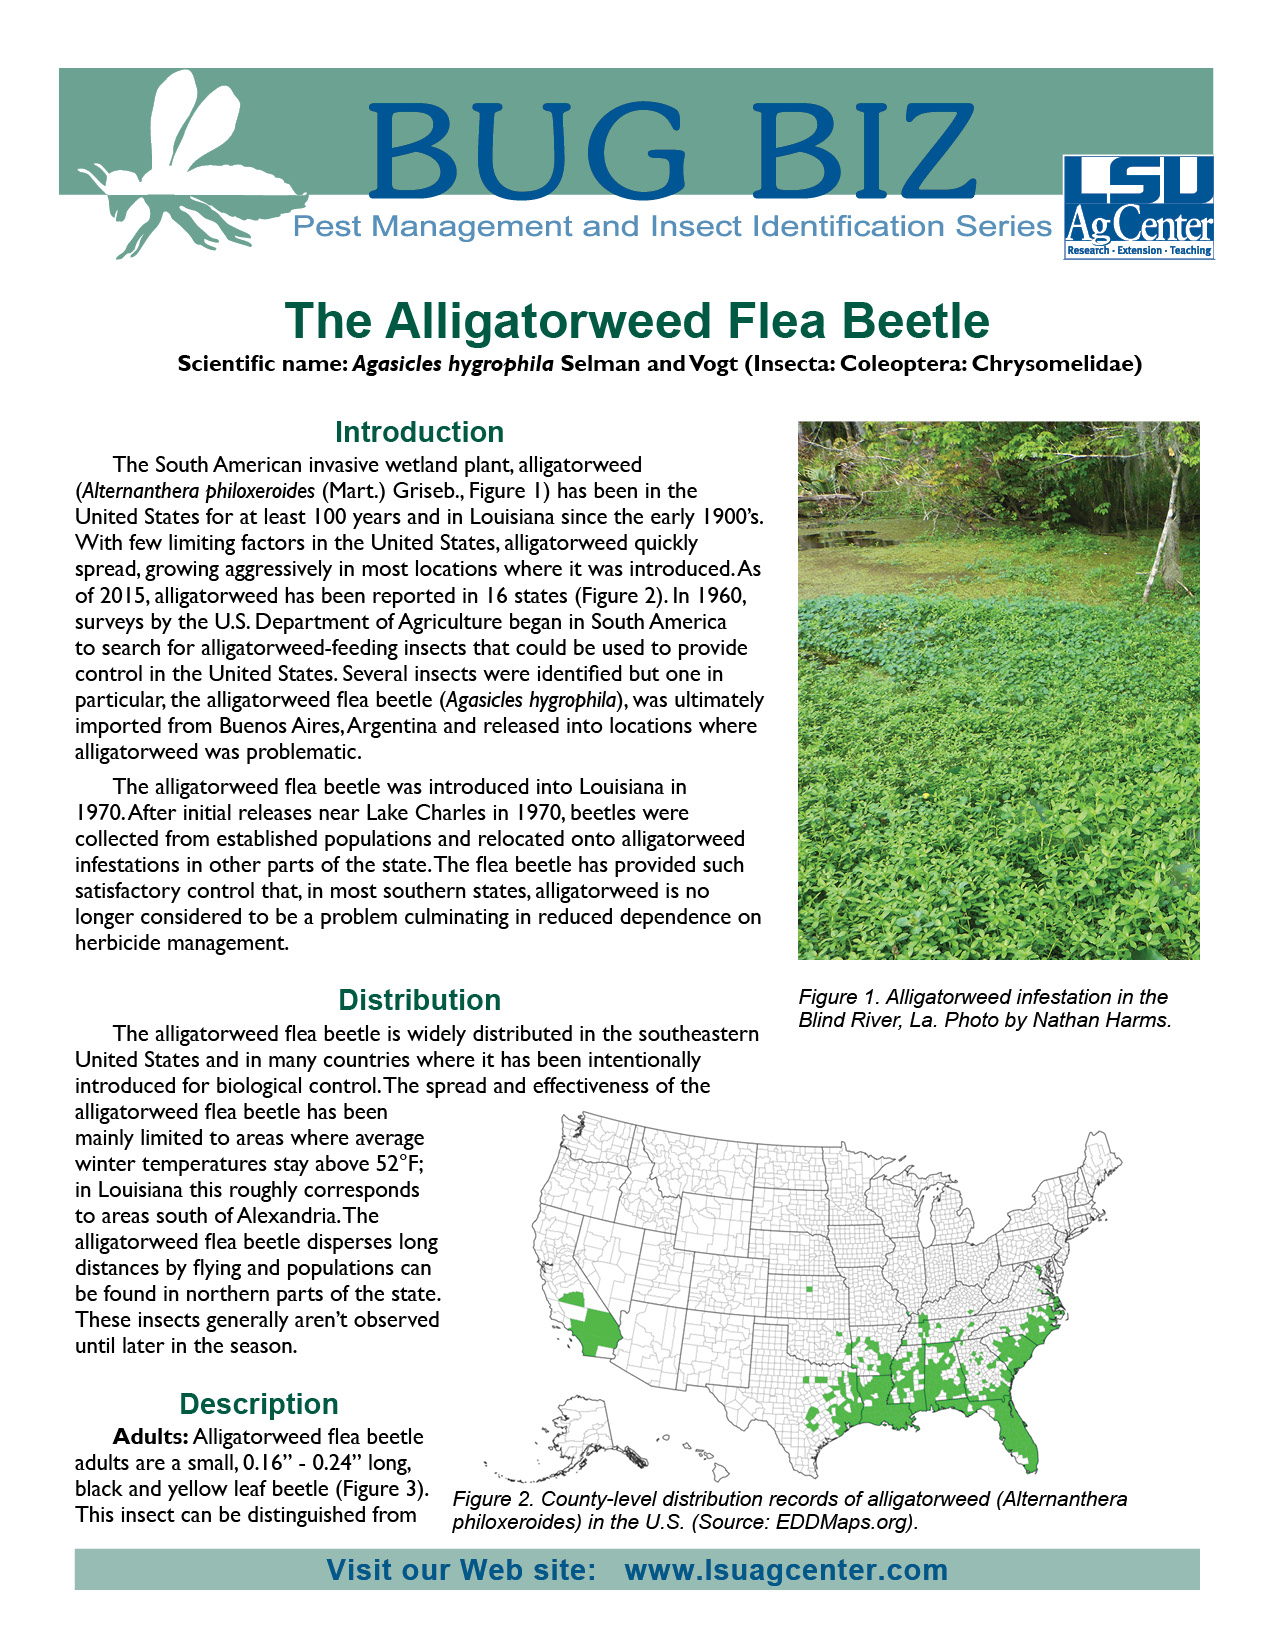 The Alligatorweed Flea Beetle